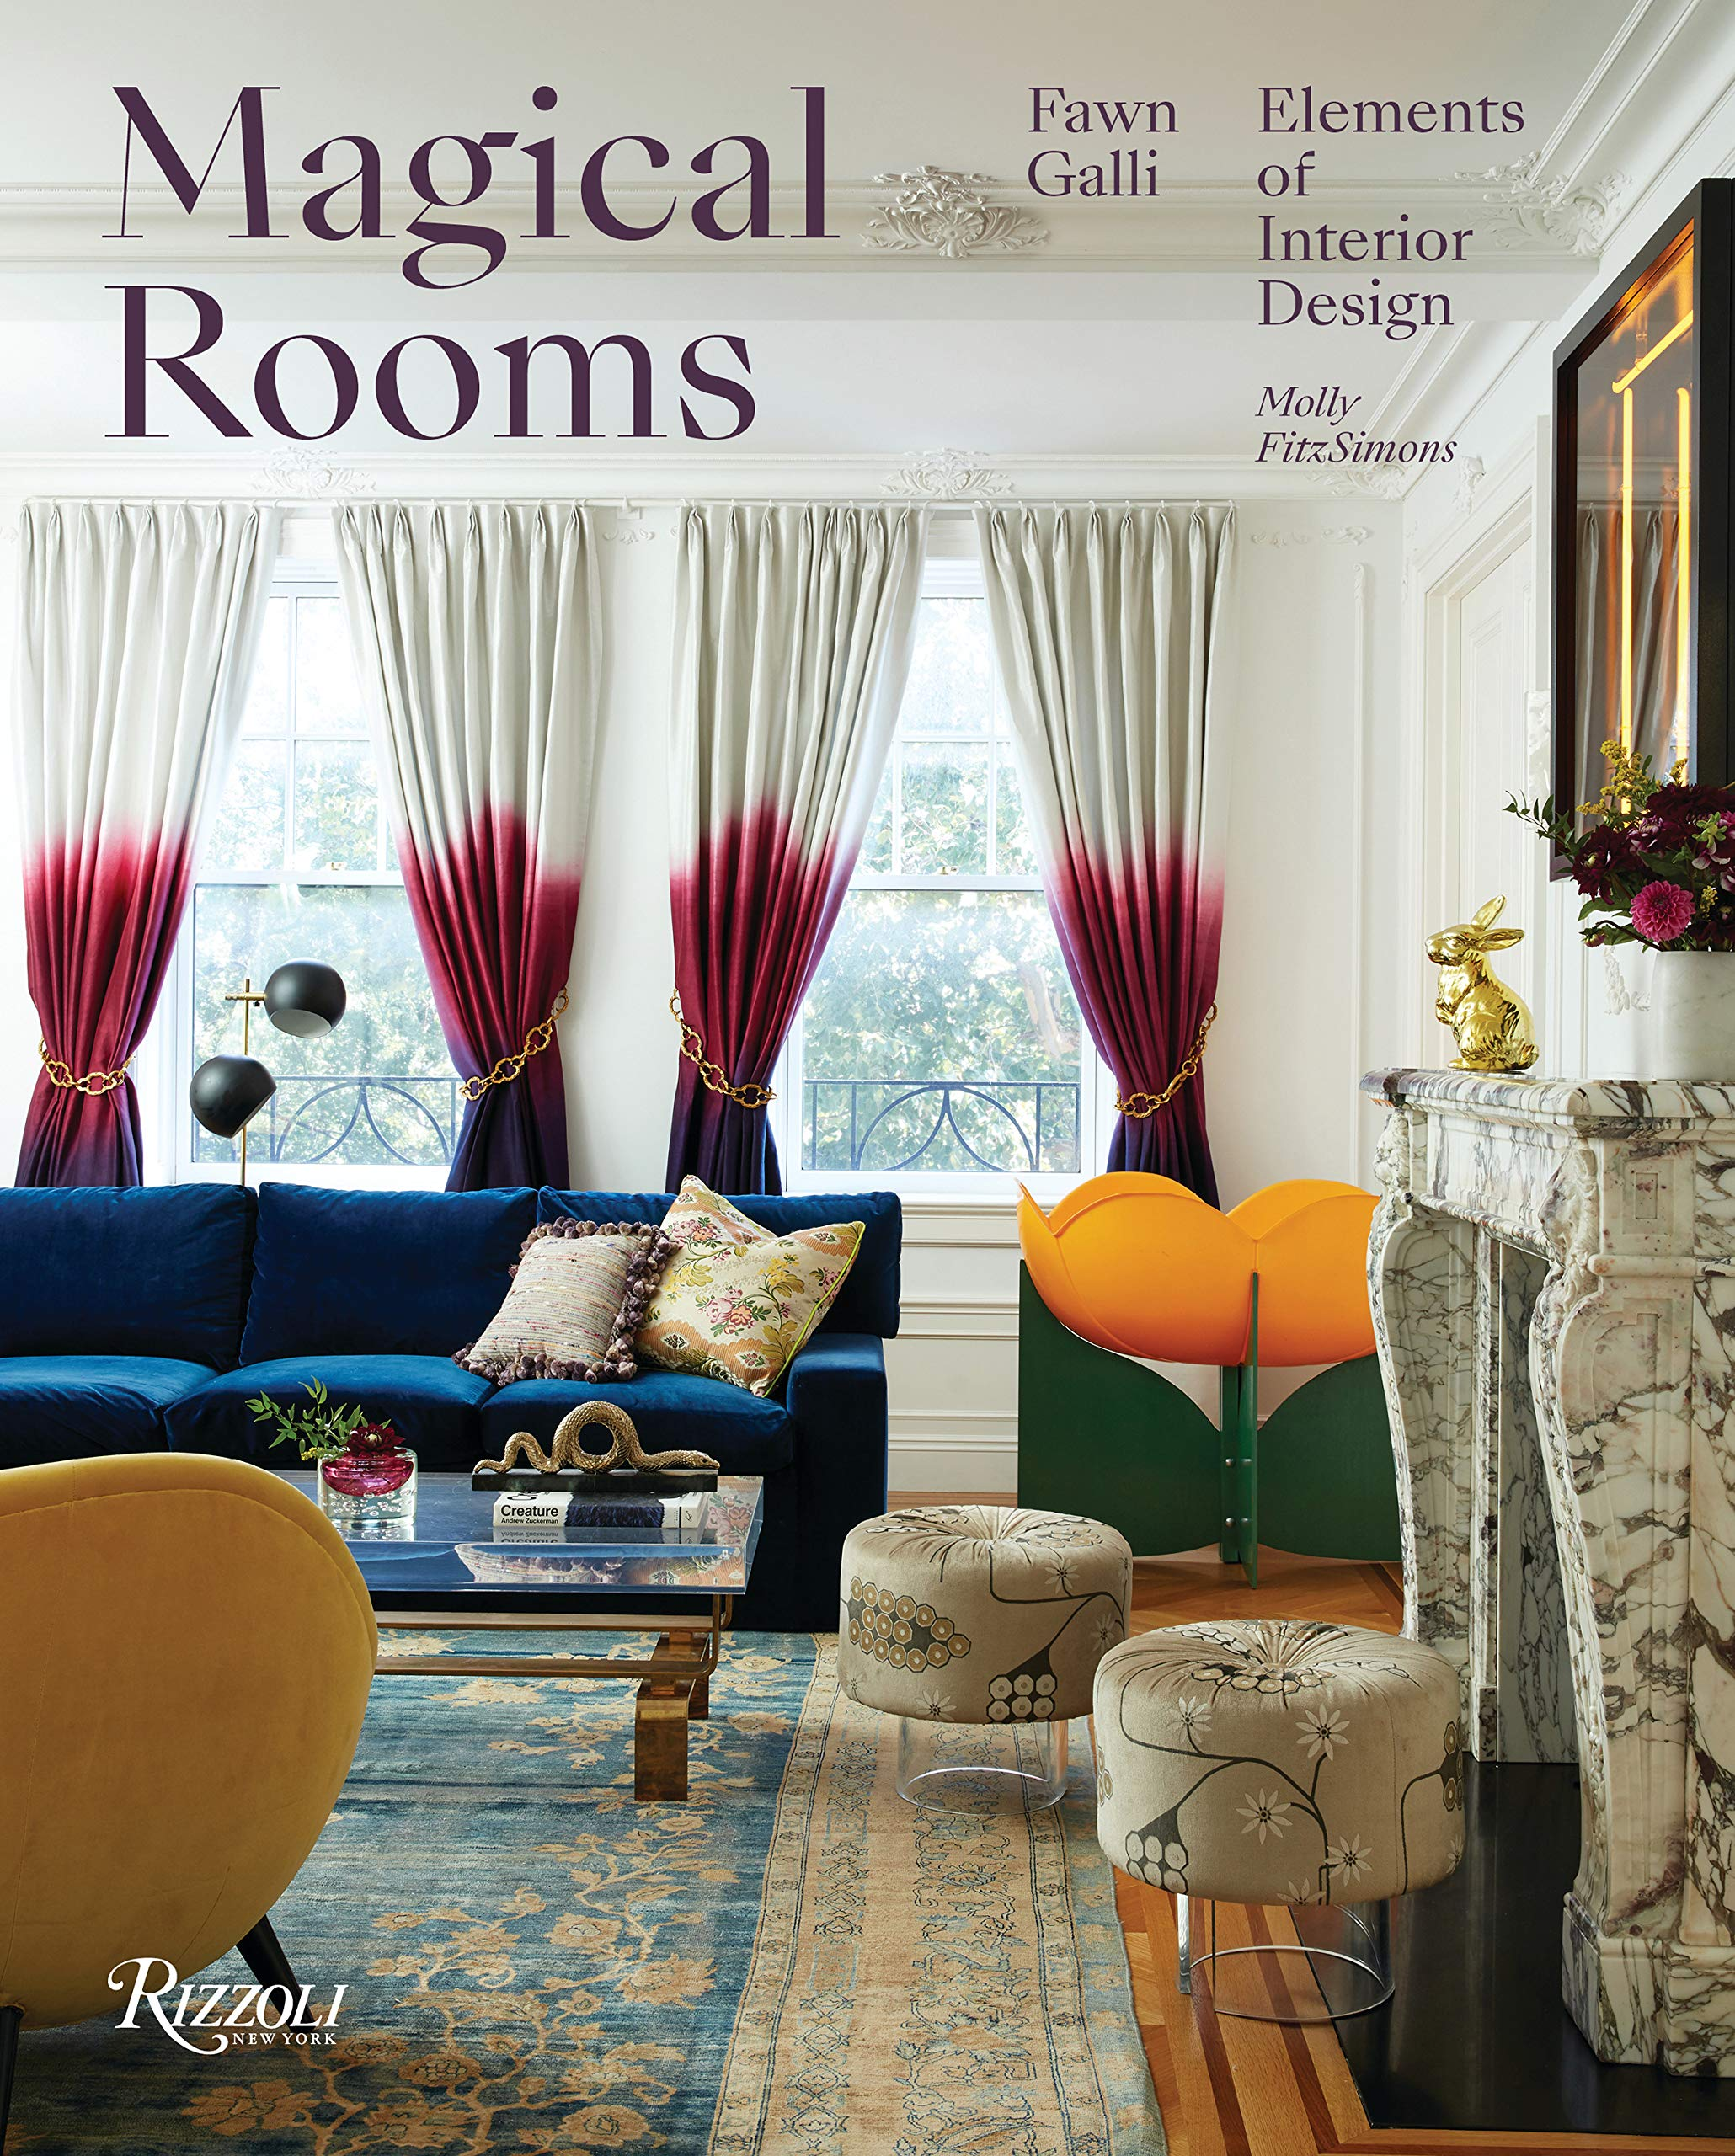 Magical Rooms Elements Of Interior Design Galli Fawn Fitzsimons Molly 9780847864478 Amazon Com Books